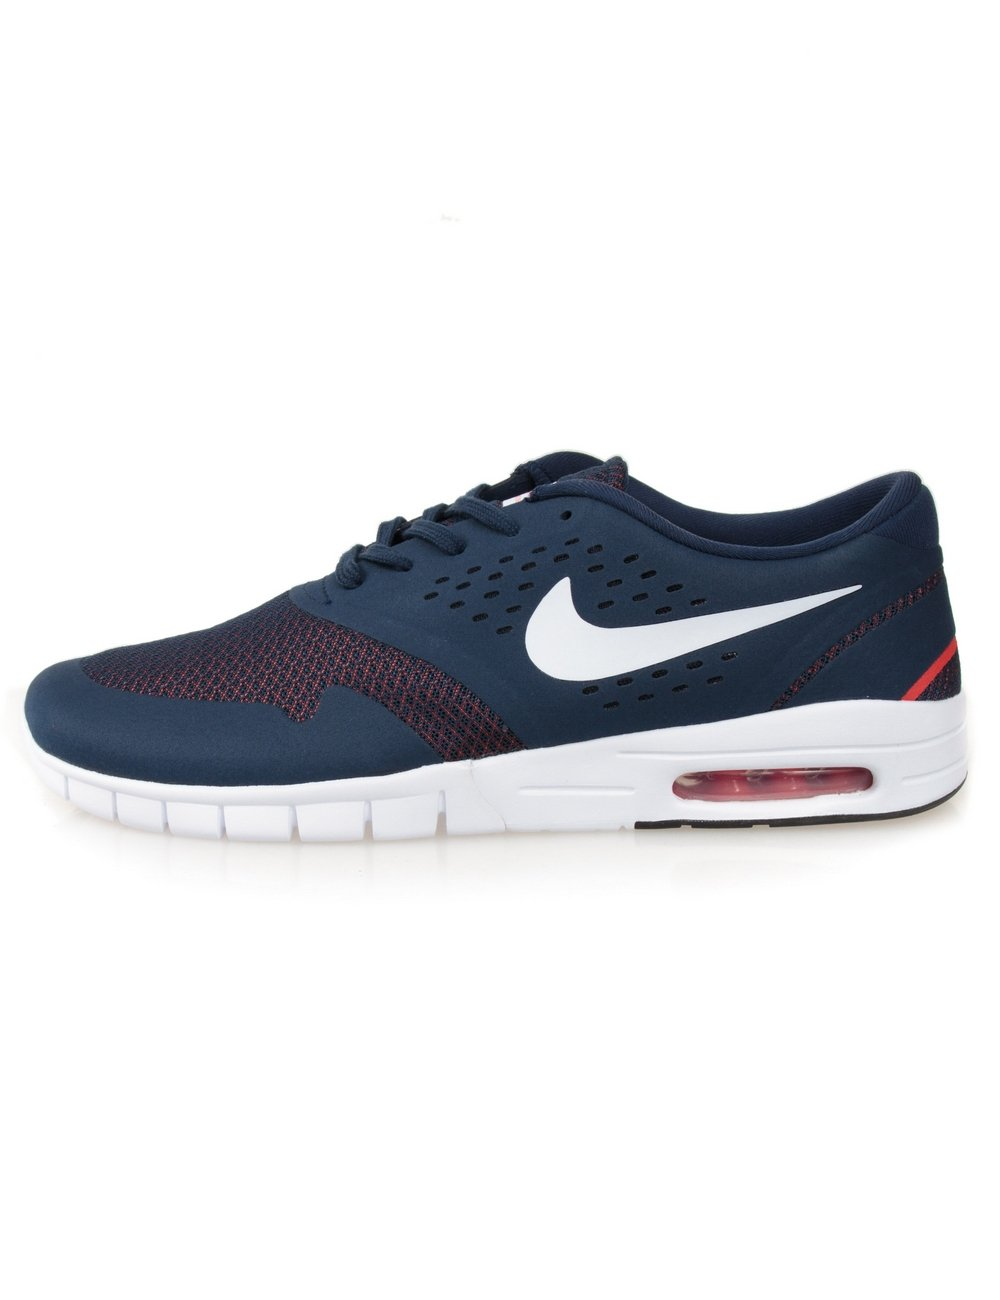 nike sb eric koston 2 max midnight navy trainers from. Black Bedroom Furniture Sets. Home Design Ideas